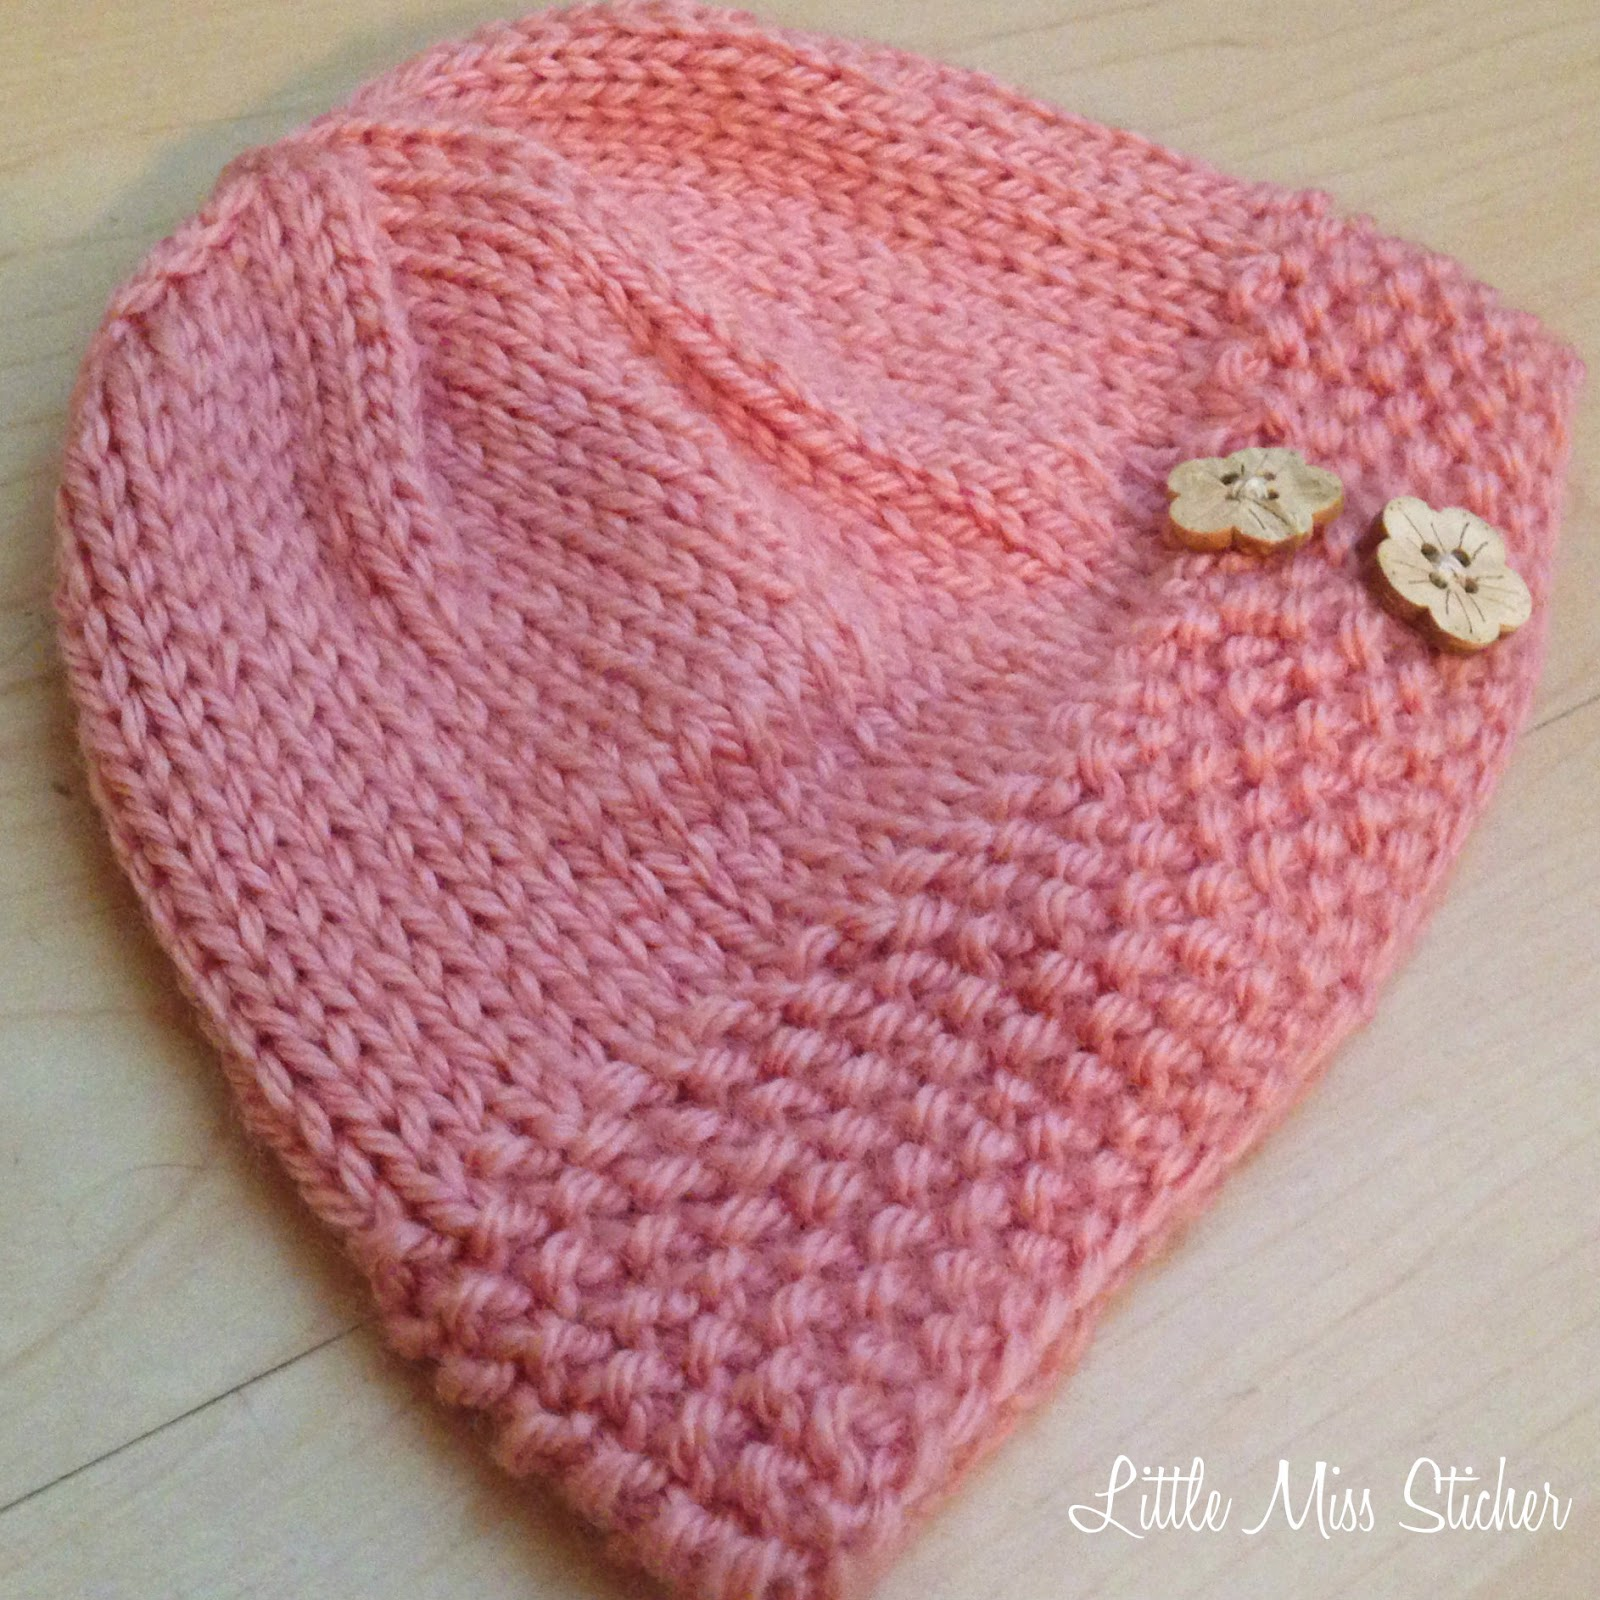 Patterns For Knitted Baby Hats : Little Miss Stitcher: Bitty Beanie Free Knit Pattern